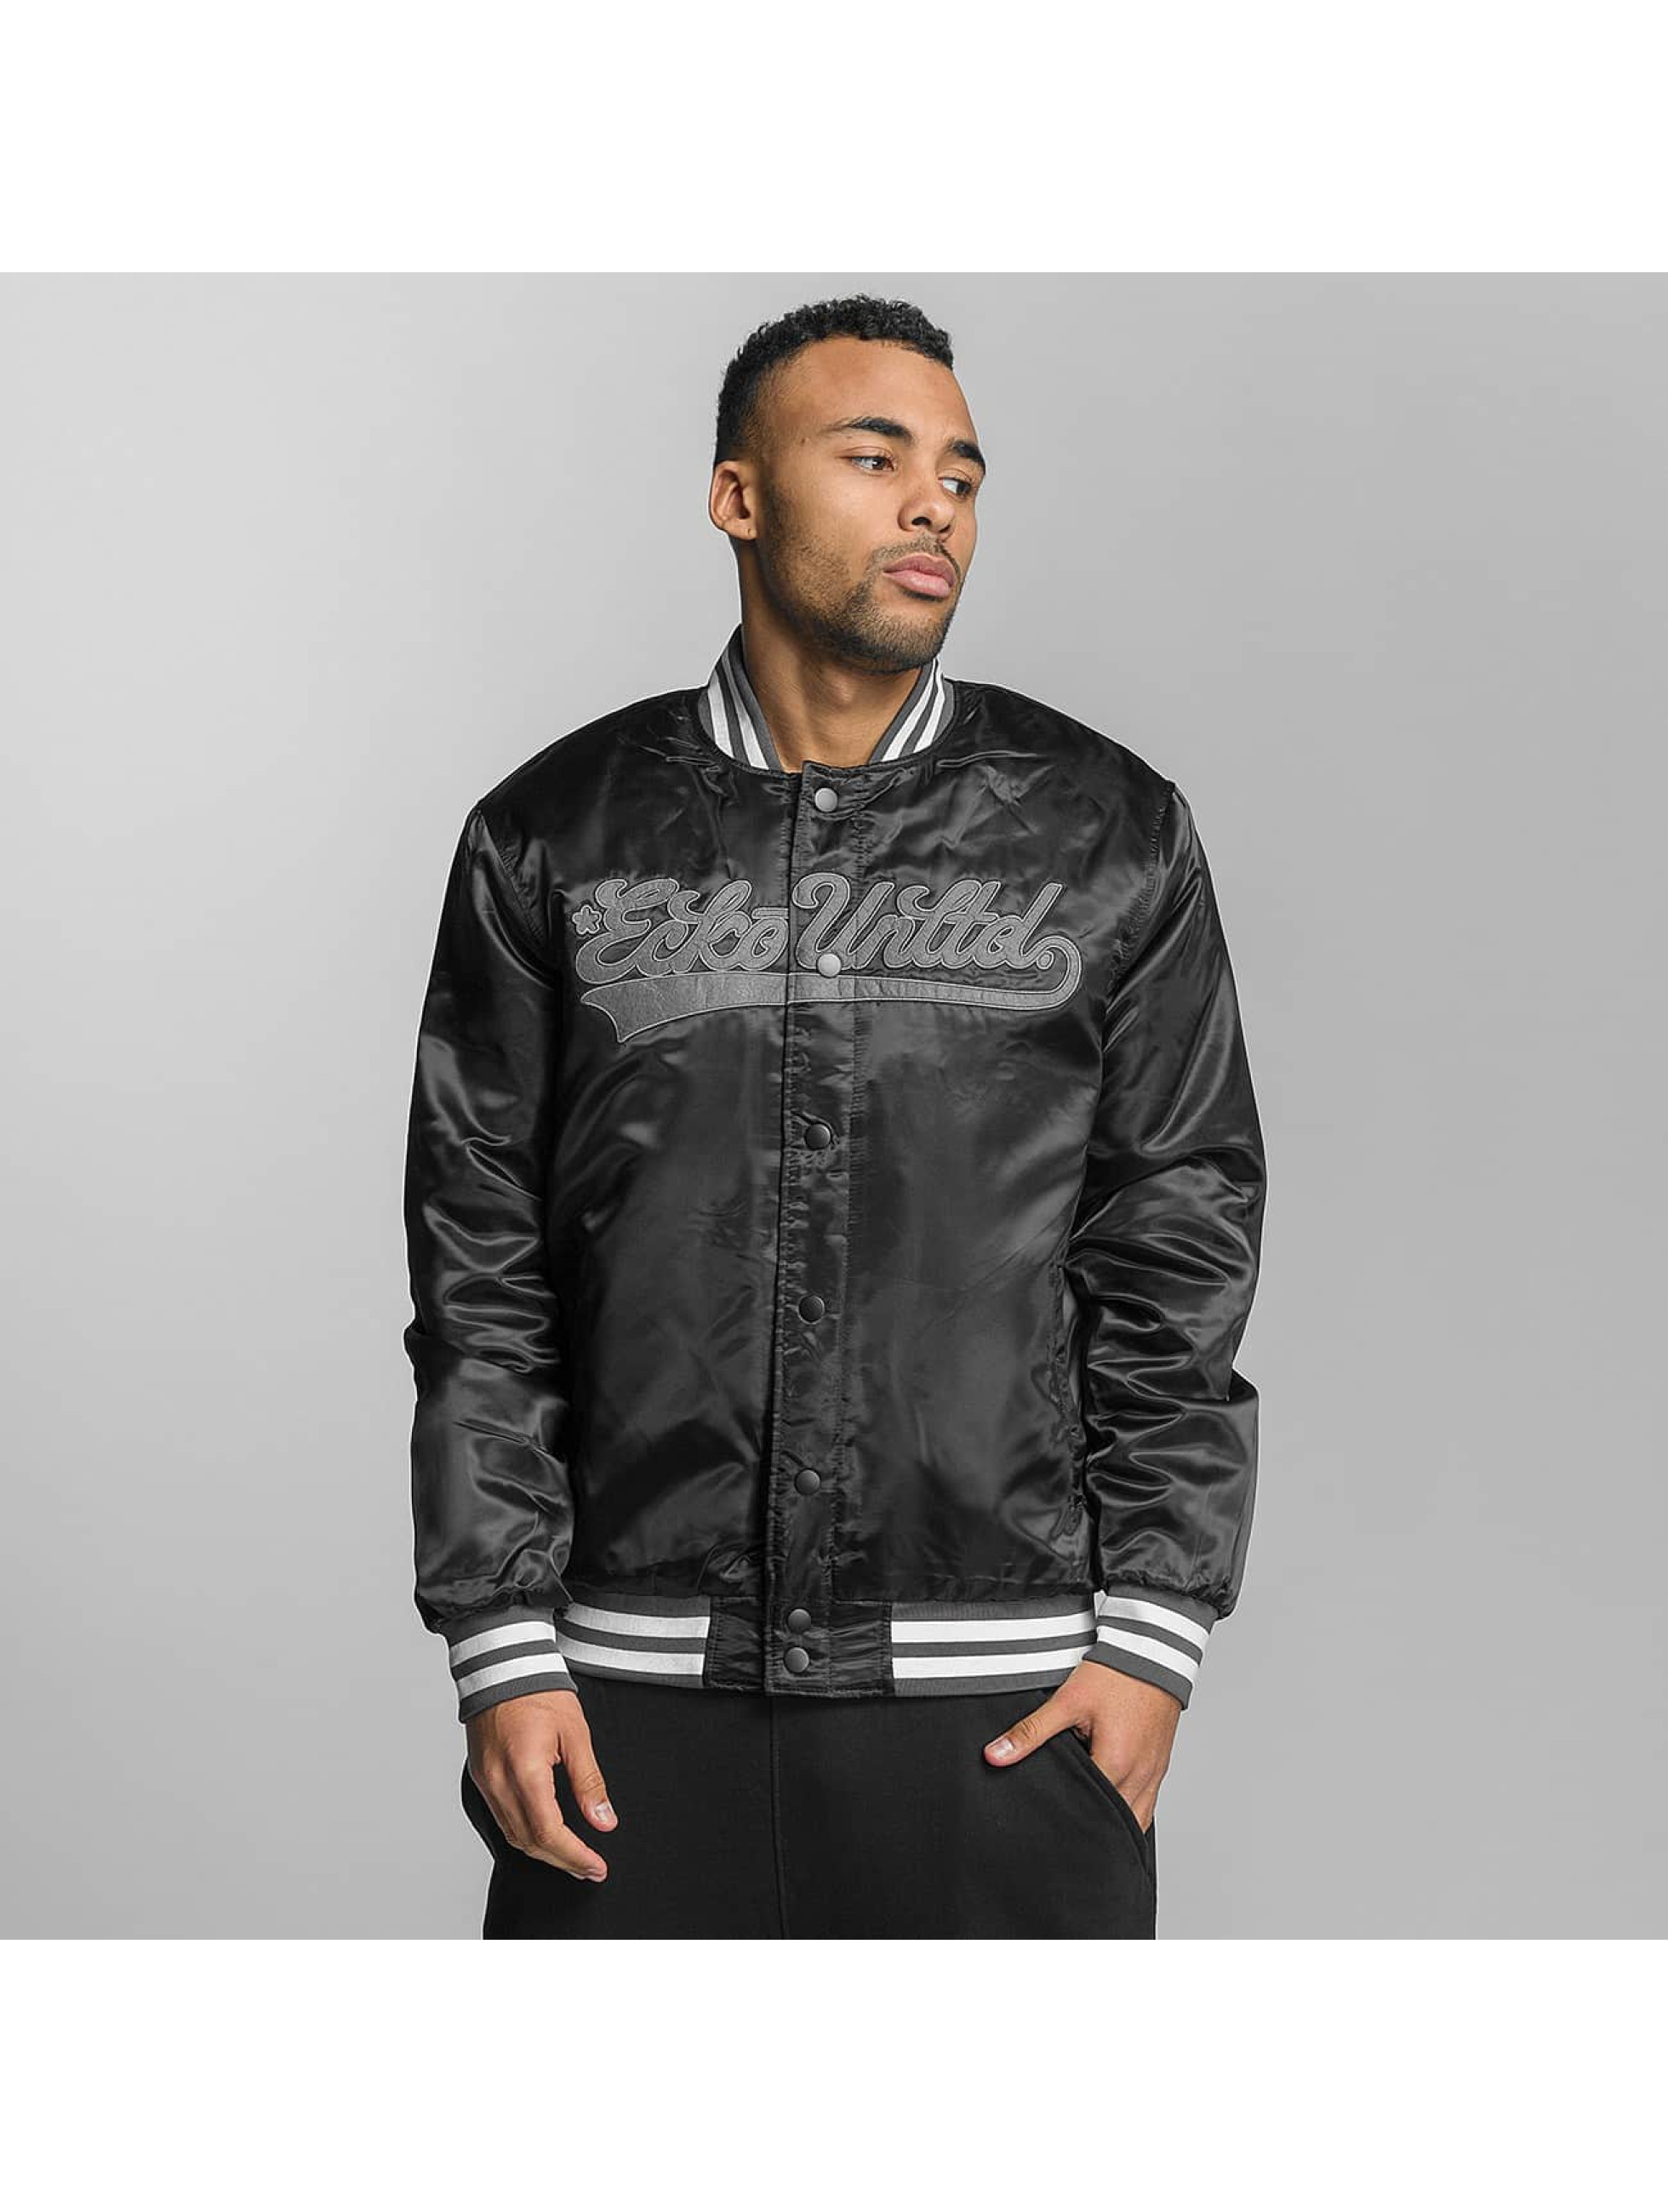 Ecko Unltd. / Bomber jacket Shinning Star in black 2XL